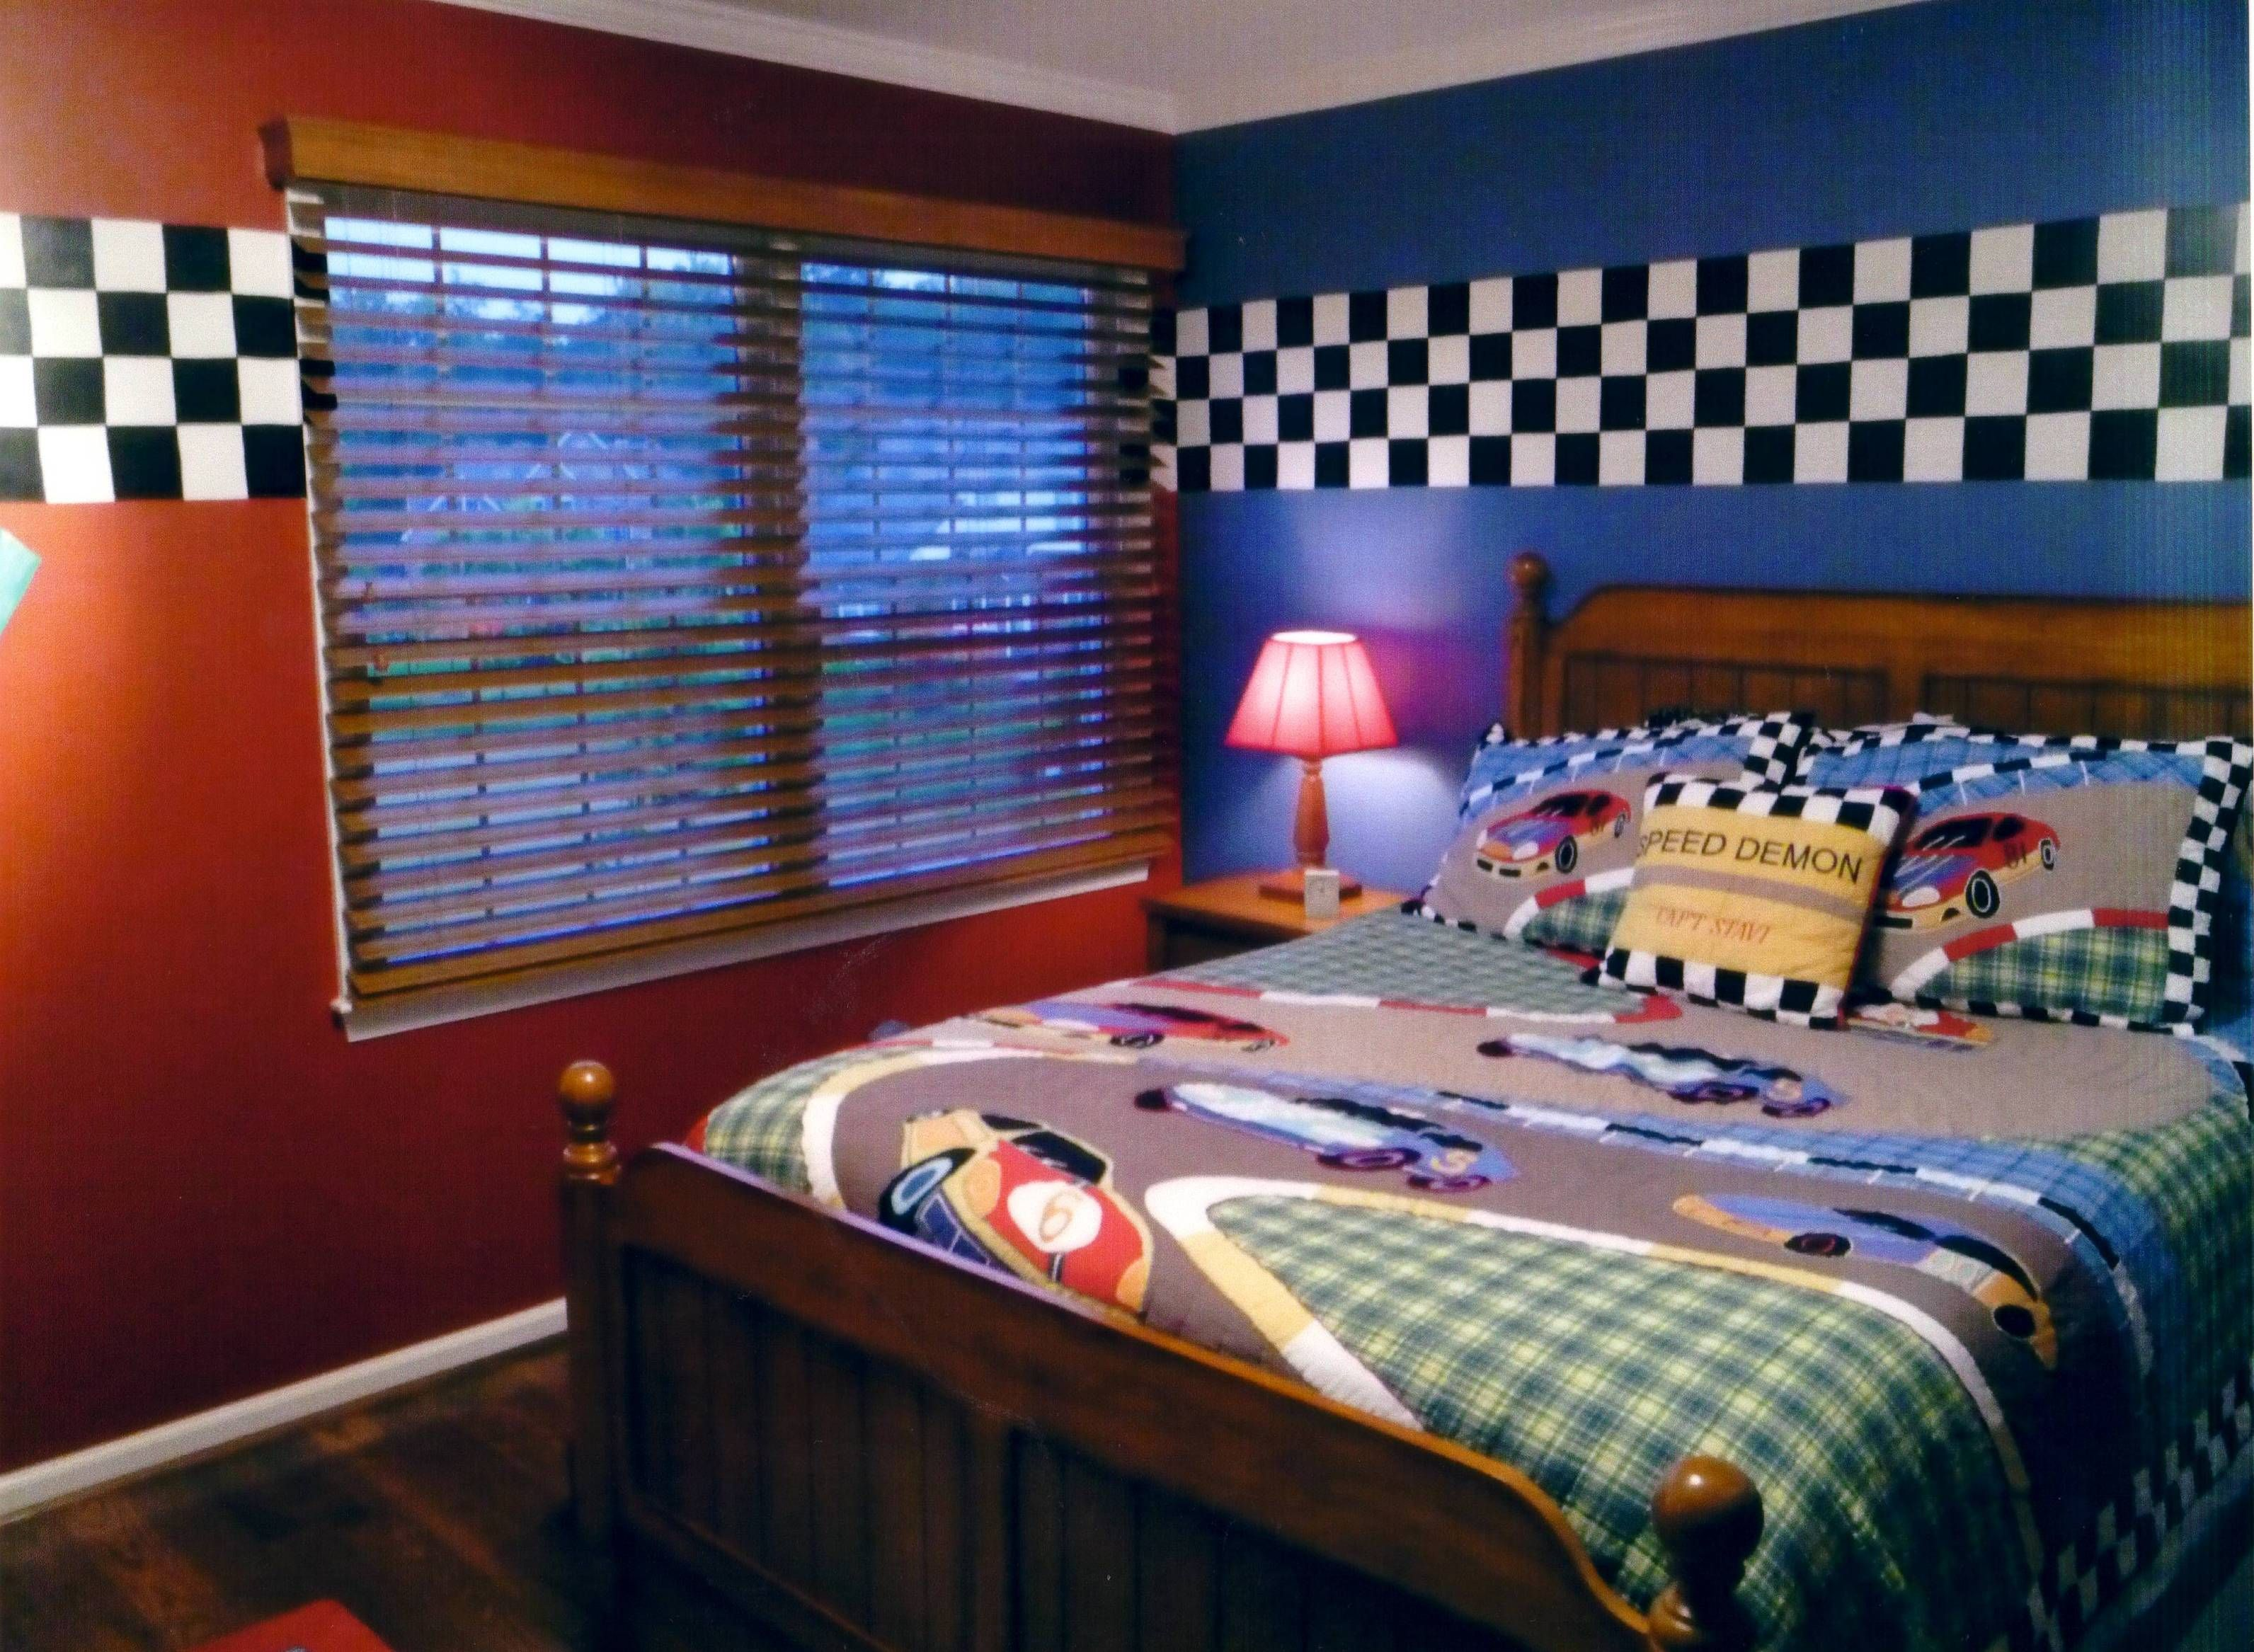 Race Car Bedroom Love The Paint And Checkered Border